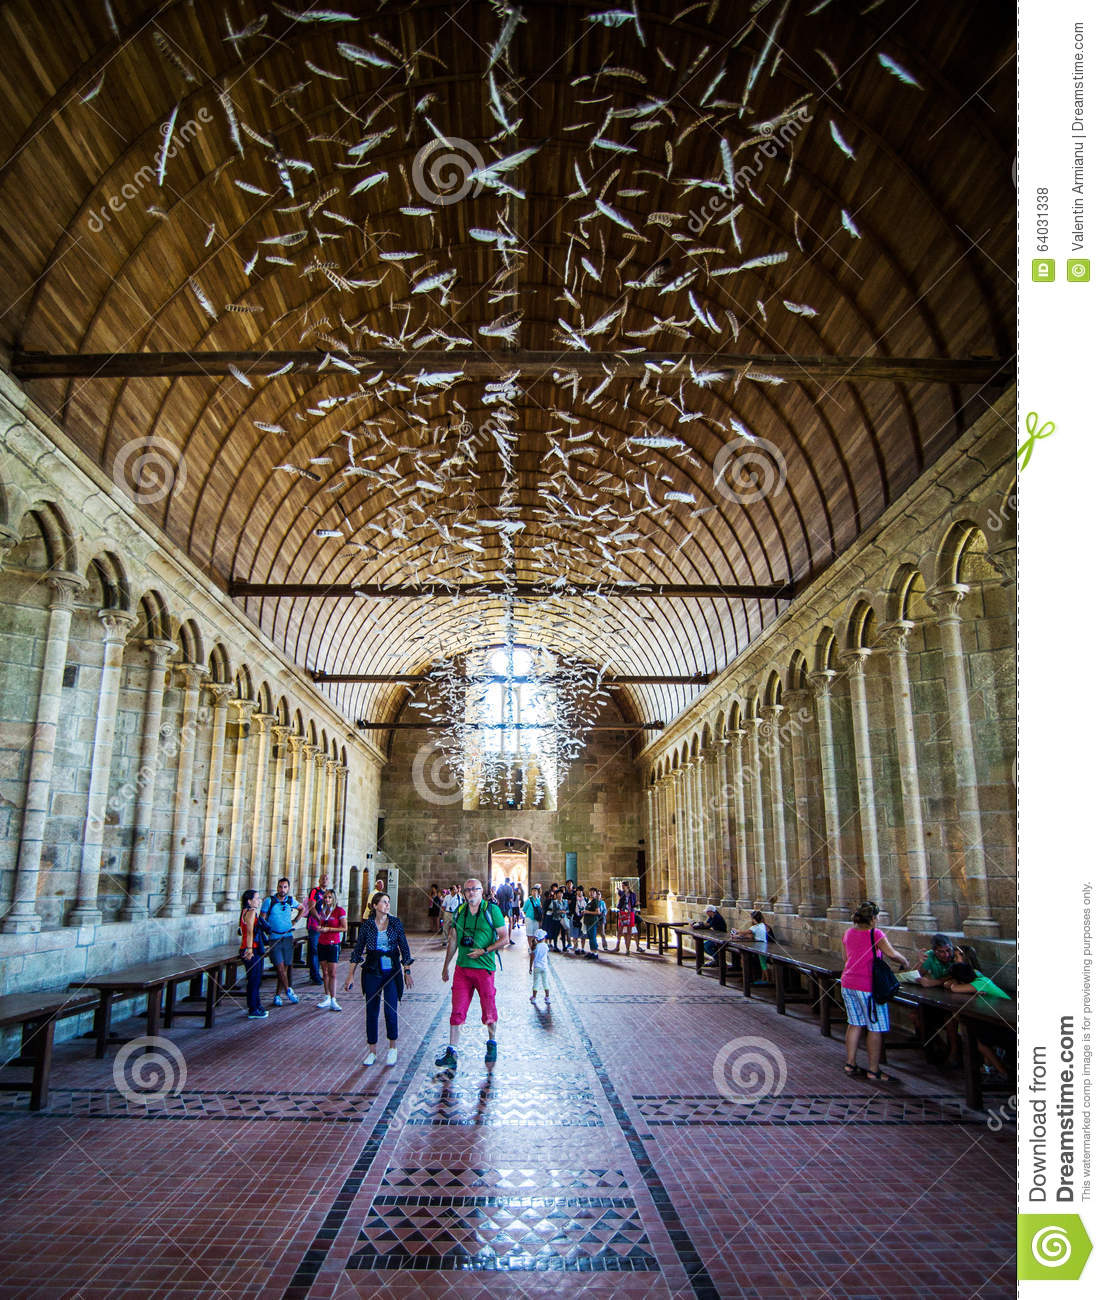 Mont saint michel abbey interior editorial stock photo for Interieur frans